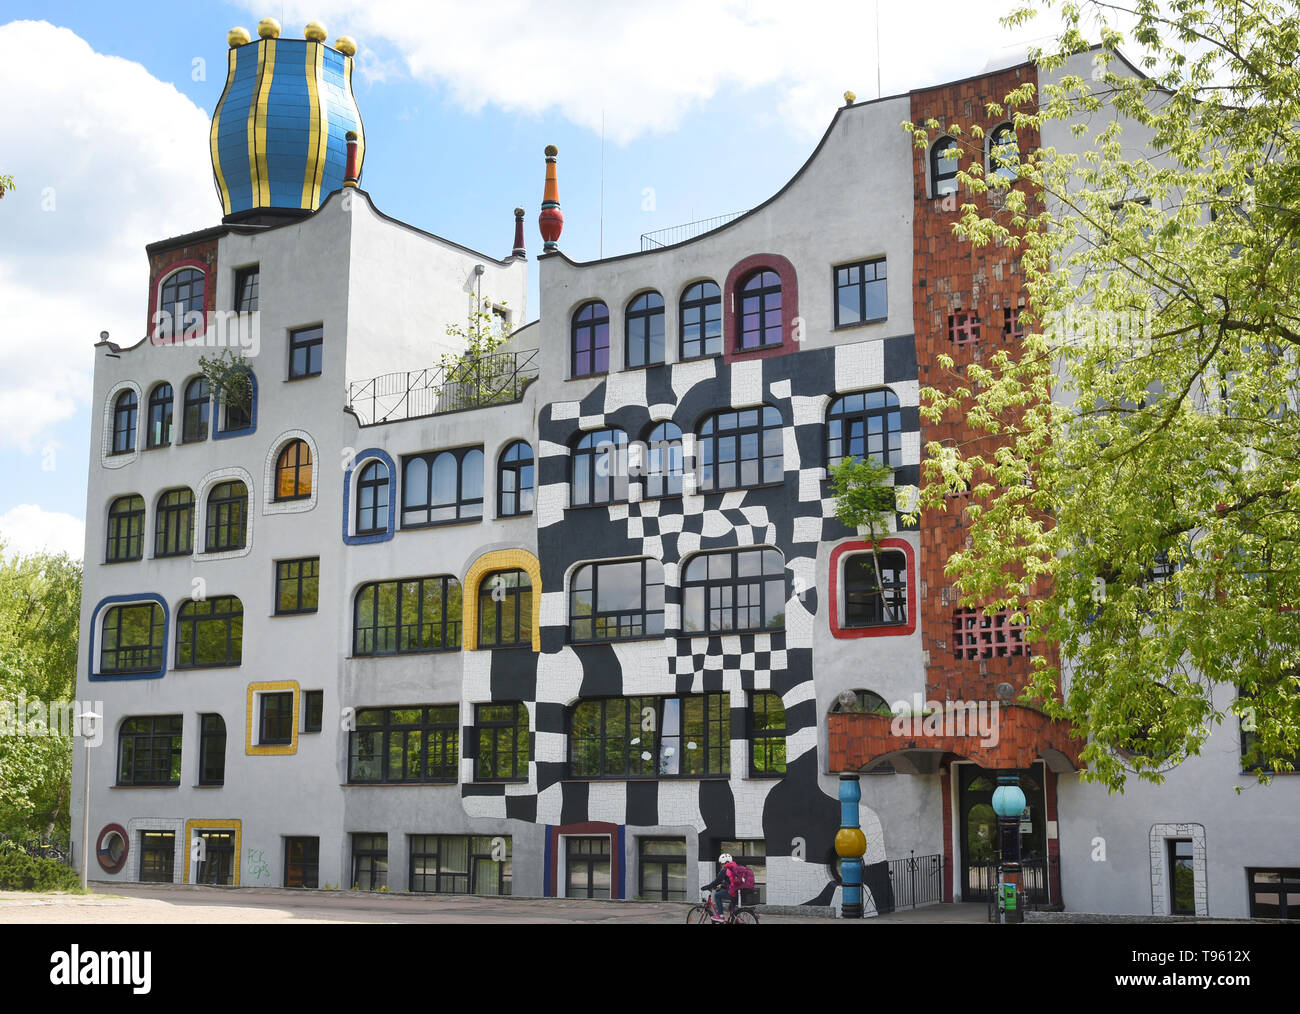 07 May 2019, Saxony-Anhalt, Wittenberg Lutherstadt: The photo shows the Luther-Melanchthon-Gymnasium in Wittenberg, which was rebuilt 20 years ago according to the plans of Friedensreich Hundertwasser (1928-2000). The anniversary in Wittenberg is now being celebrated with a festival week, with exhibitions, theatre performances, concerts and the handover of a green school project. After the fall of the Berlin Wall, students from the city turned directly to the famous Viennese artist and architect with the request to transform the GDR prefabricated building into a very special place. At present - Stock Image